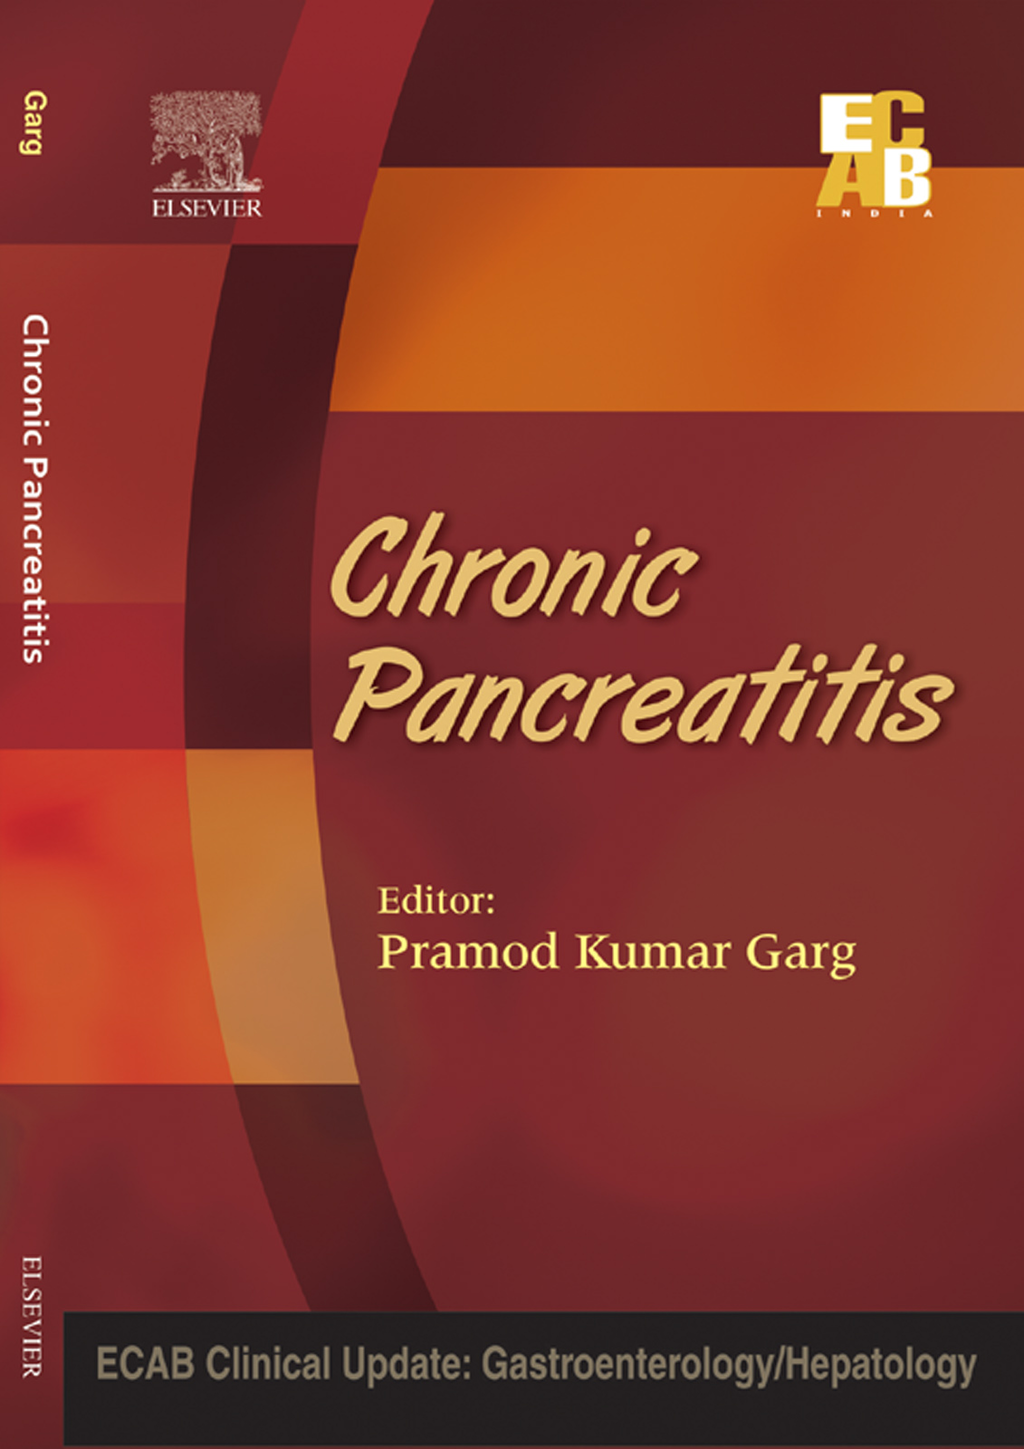 Chronic Pancreatitis - ECAB